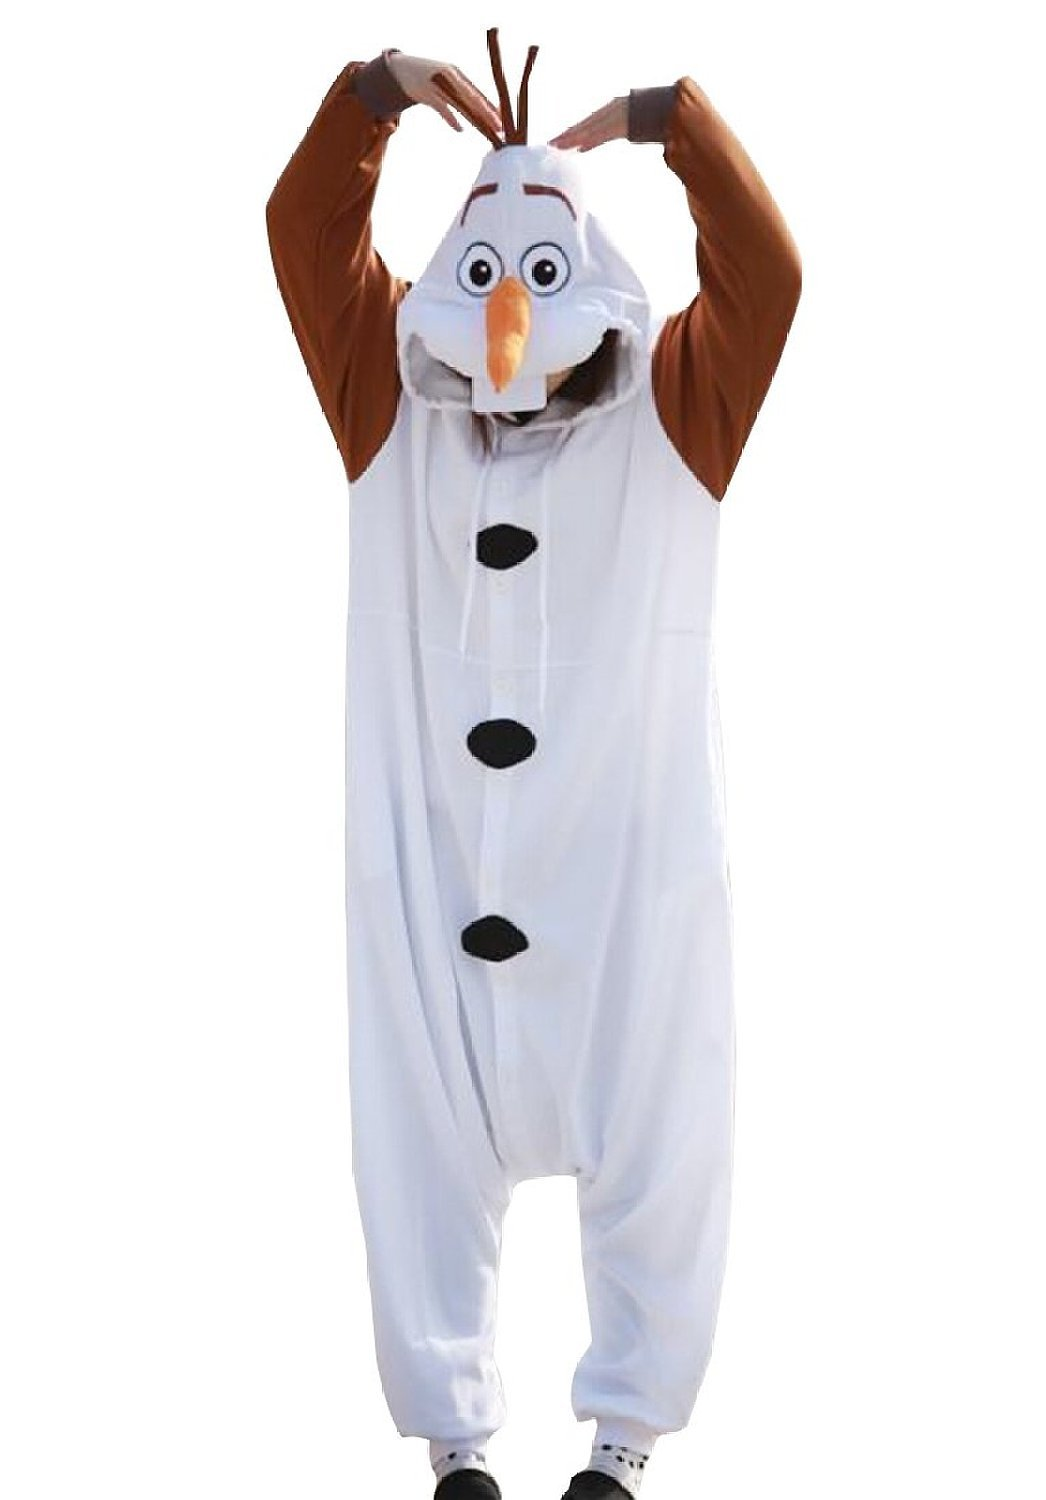 Frozen Olaf Adult Kigu Costume For Men and Women